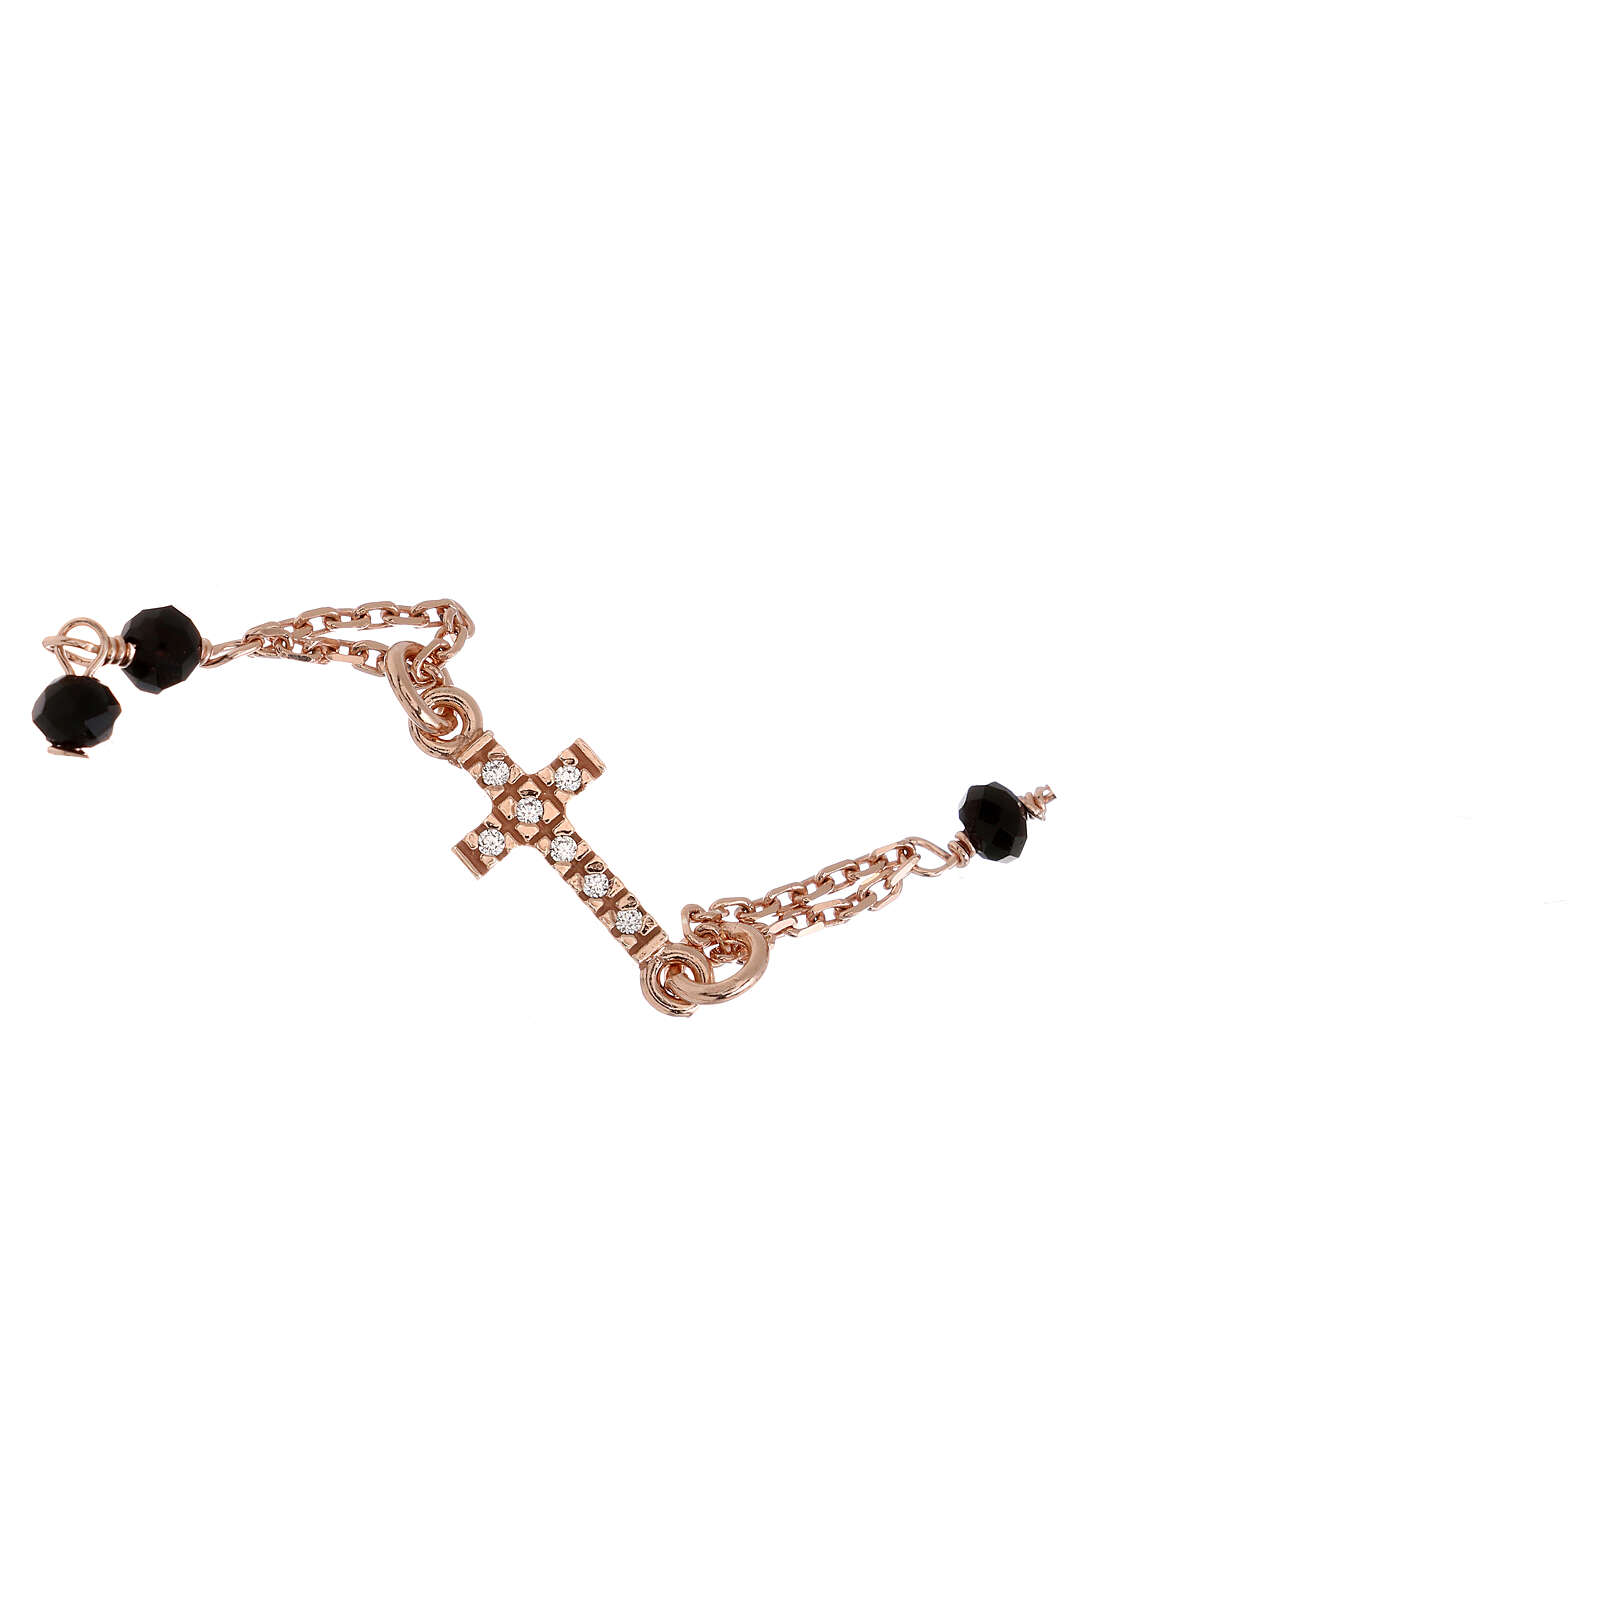 Rosary AMEN Bracelet Pavè Cross silver 925 black crystals, Rosè finish 4